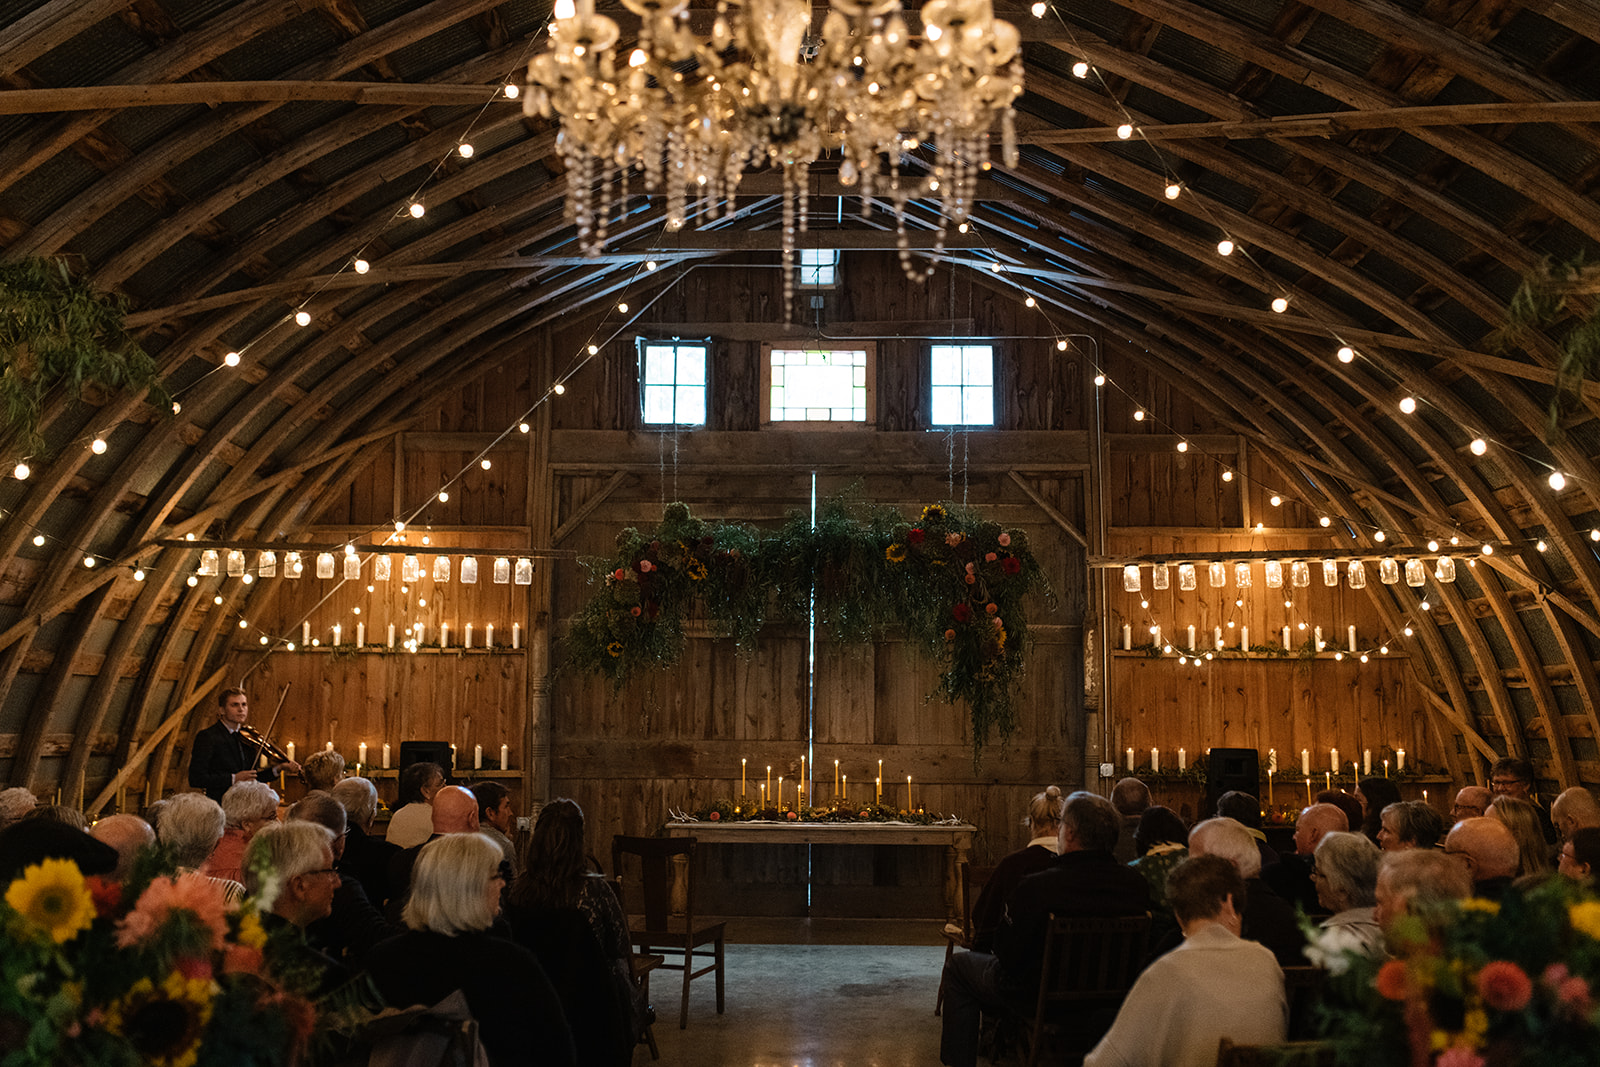 Wedding Ceremony with string lights at The Barn Wellman Iowa Wedding Venue inside